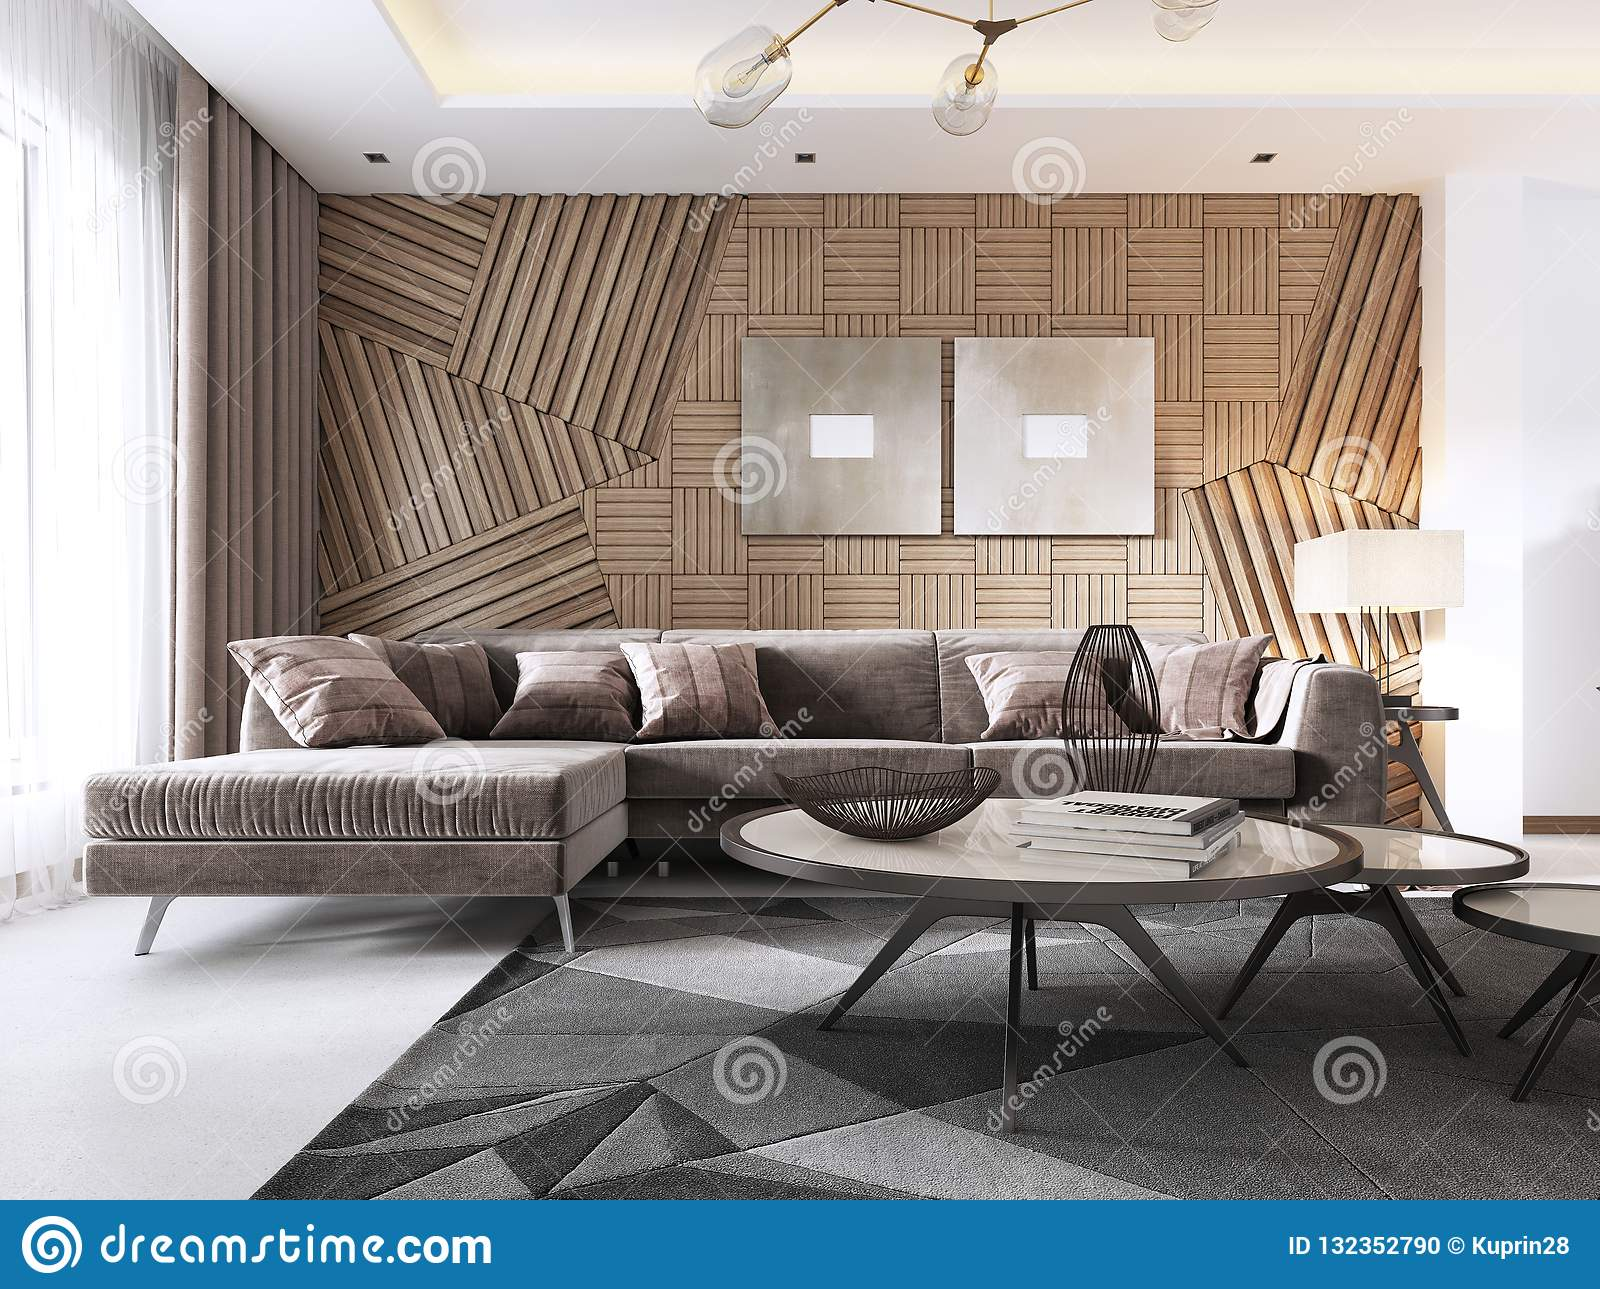 Luxurious Living Room In Contemporary Style With Wooden